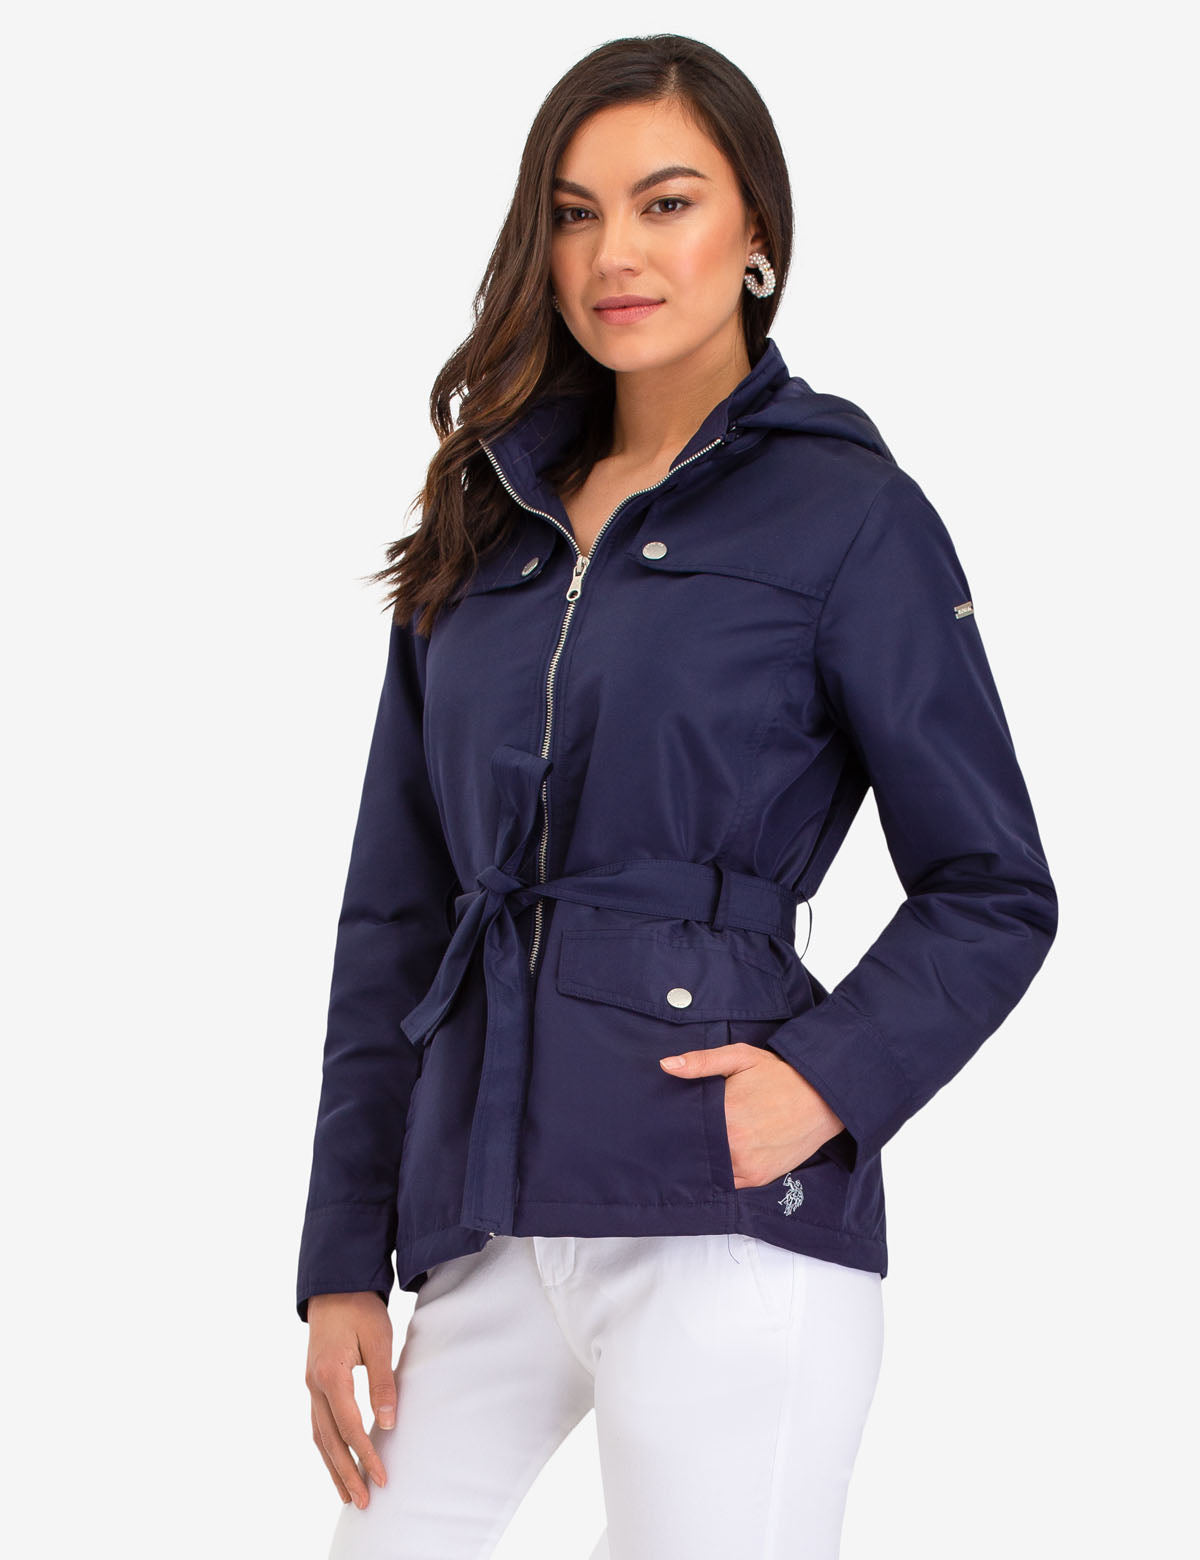 HOODED JACKET WITH BELT - U.S. Polo Assn.